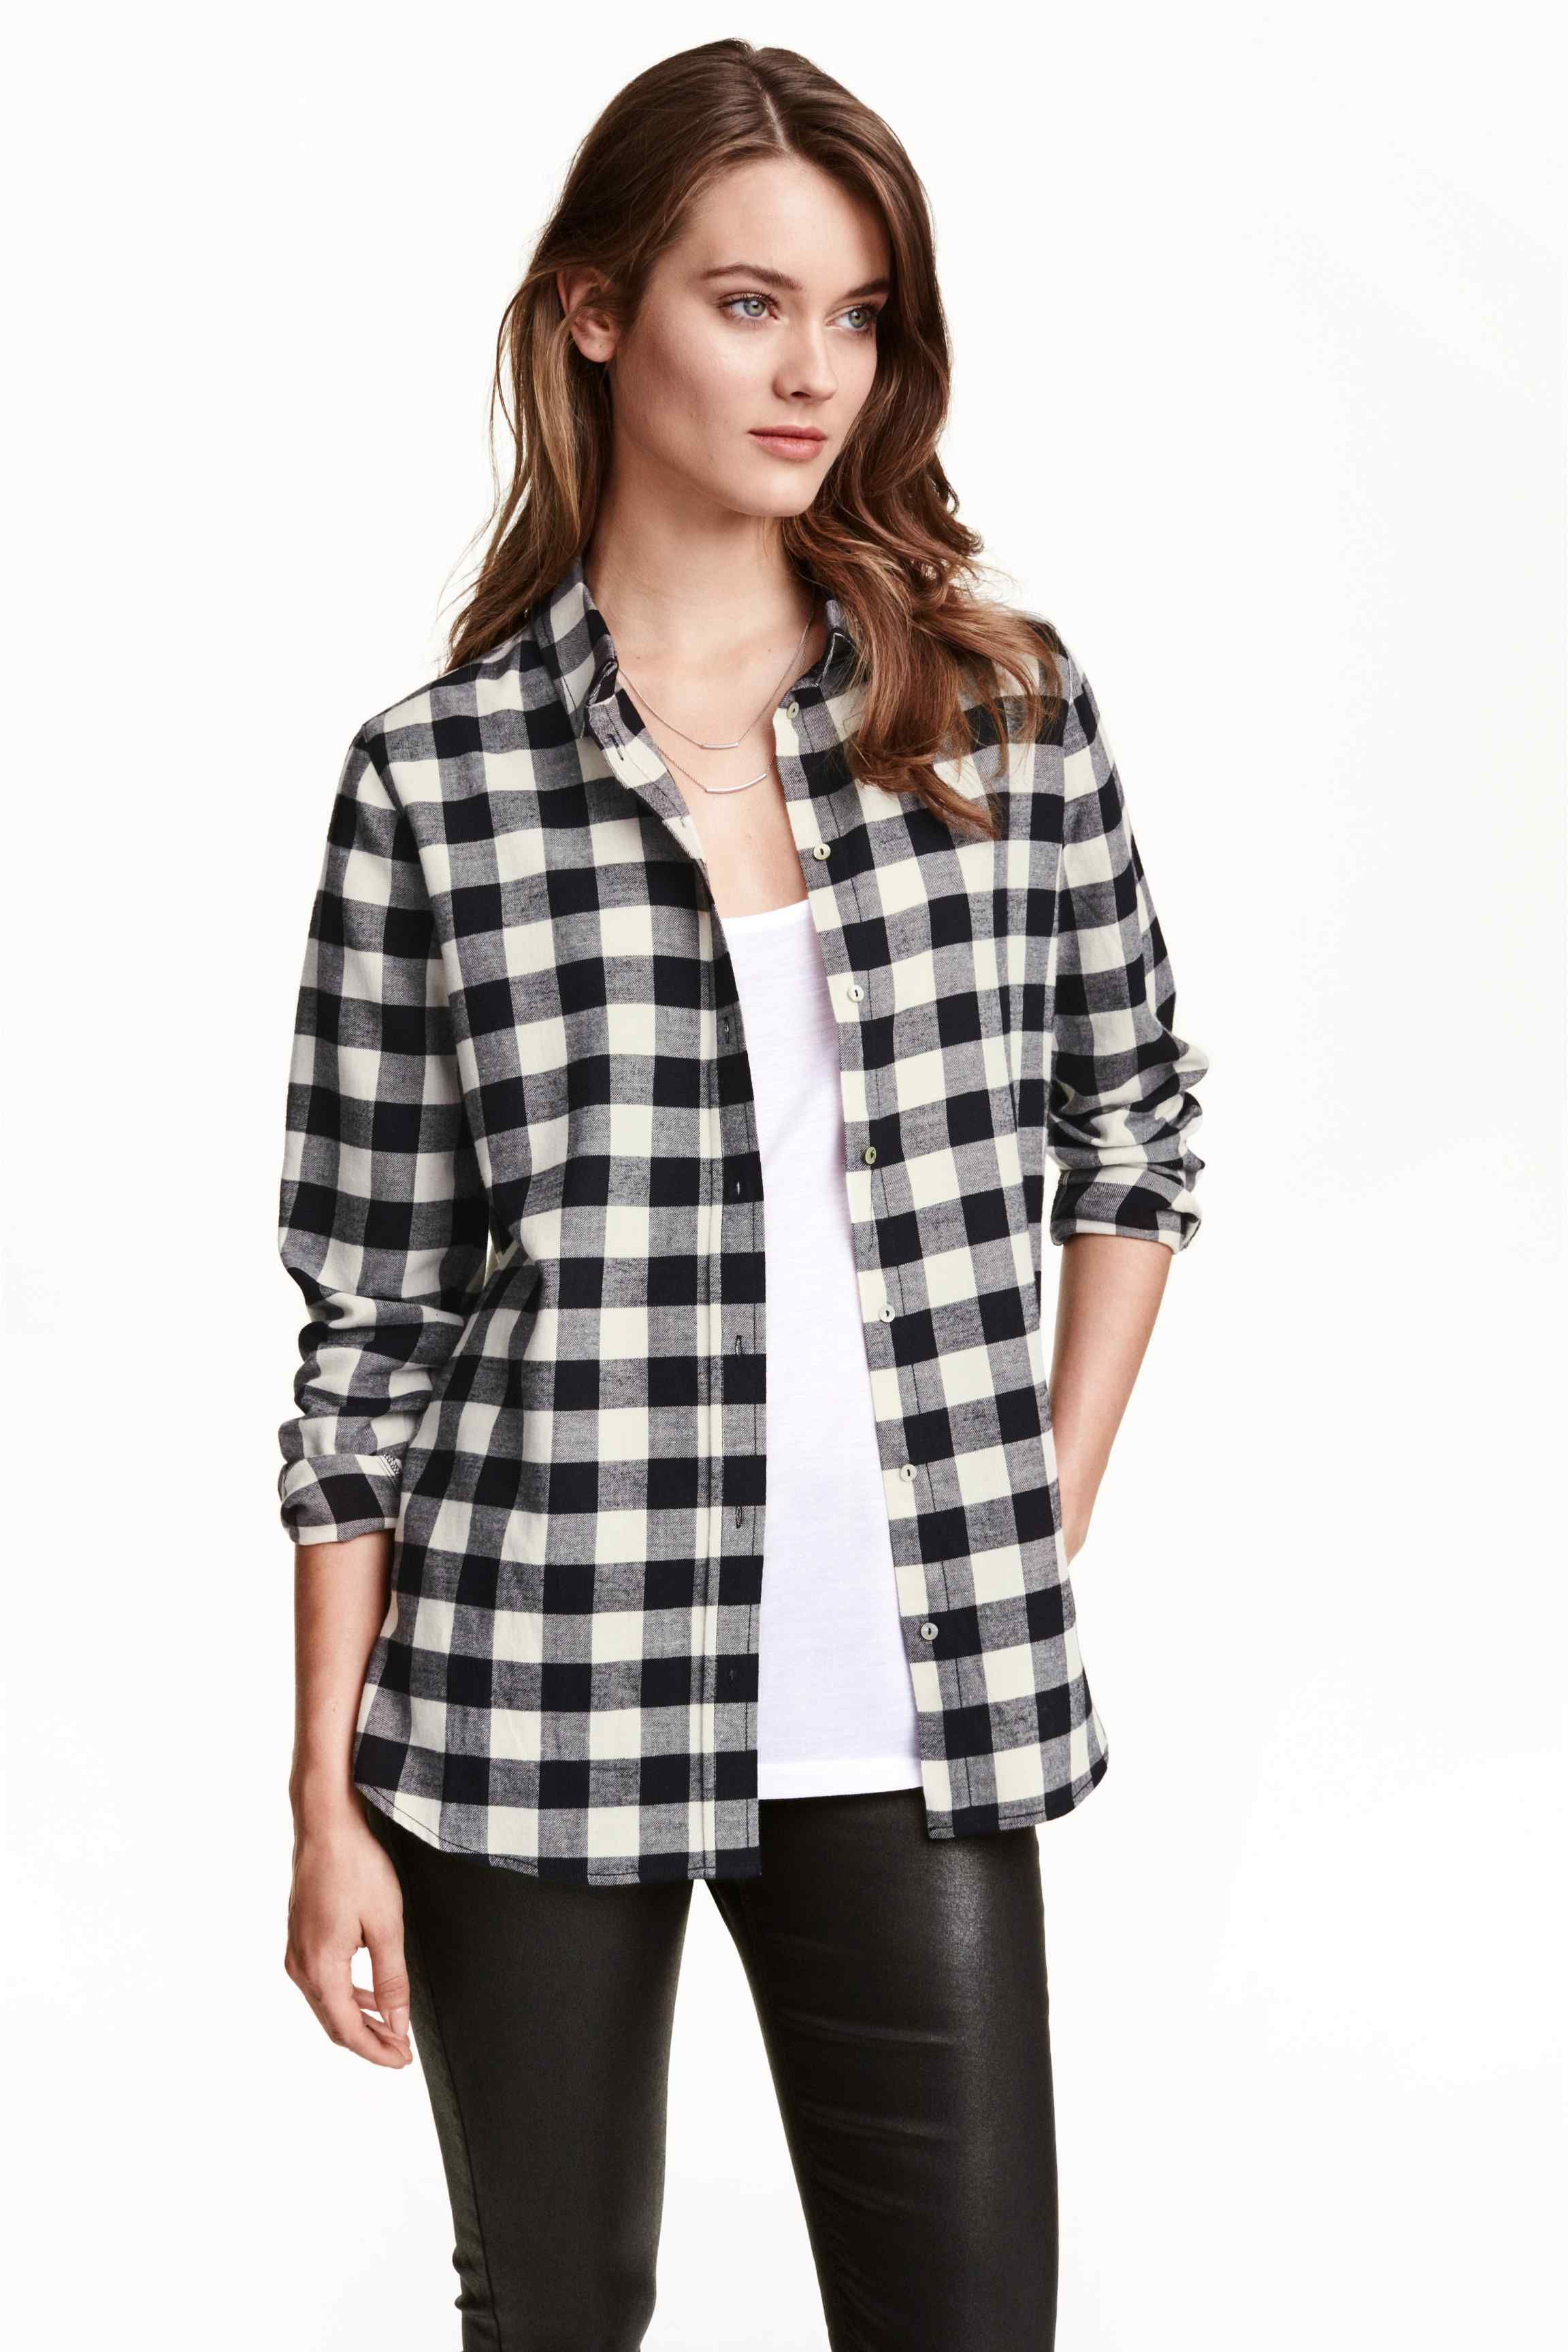 Flannel shirt outfits for women  Flanelowa koszula  HuM  Fashion  Pinterest  Flannels and Fashion